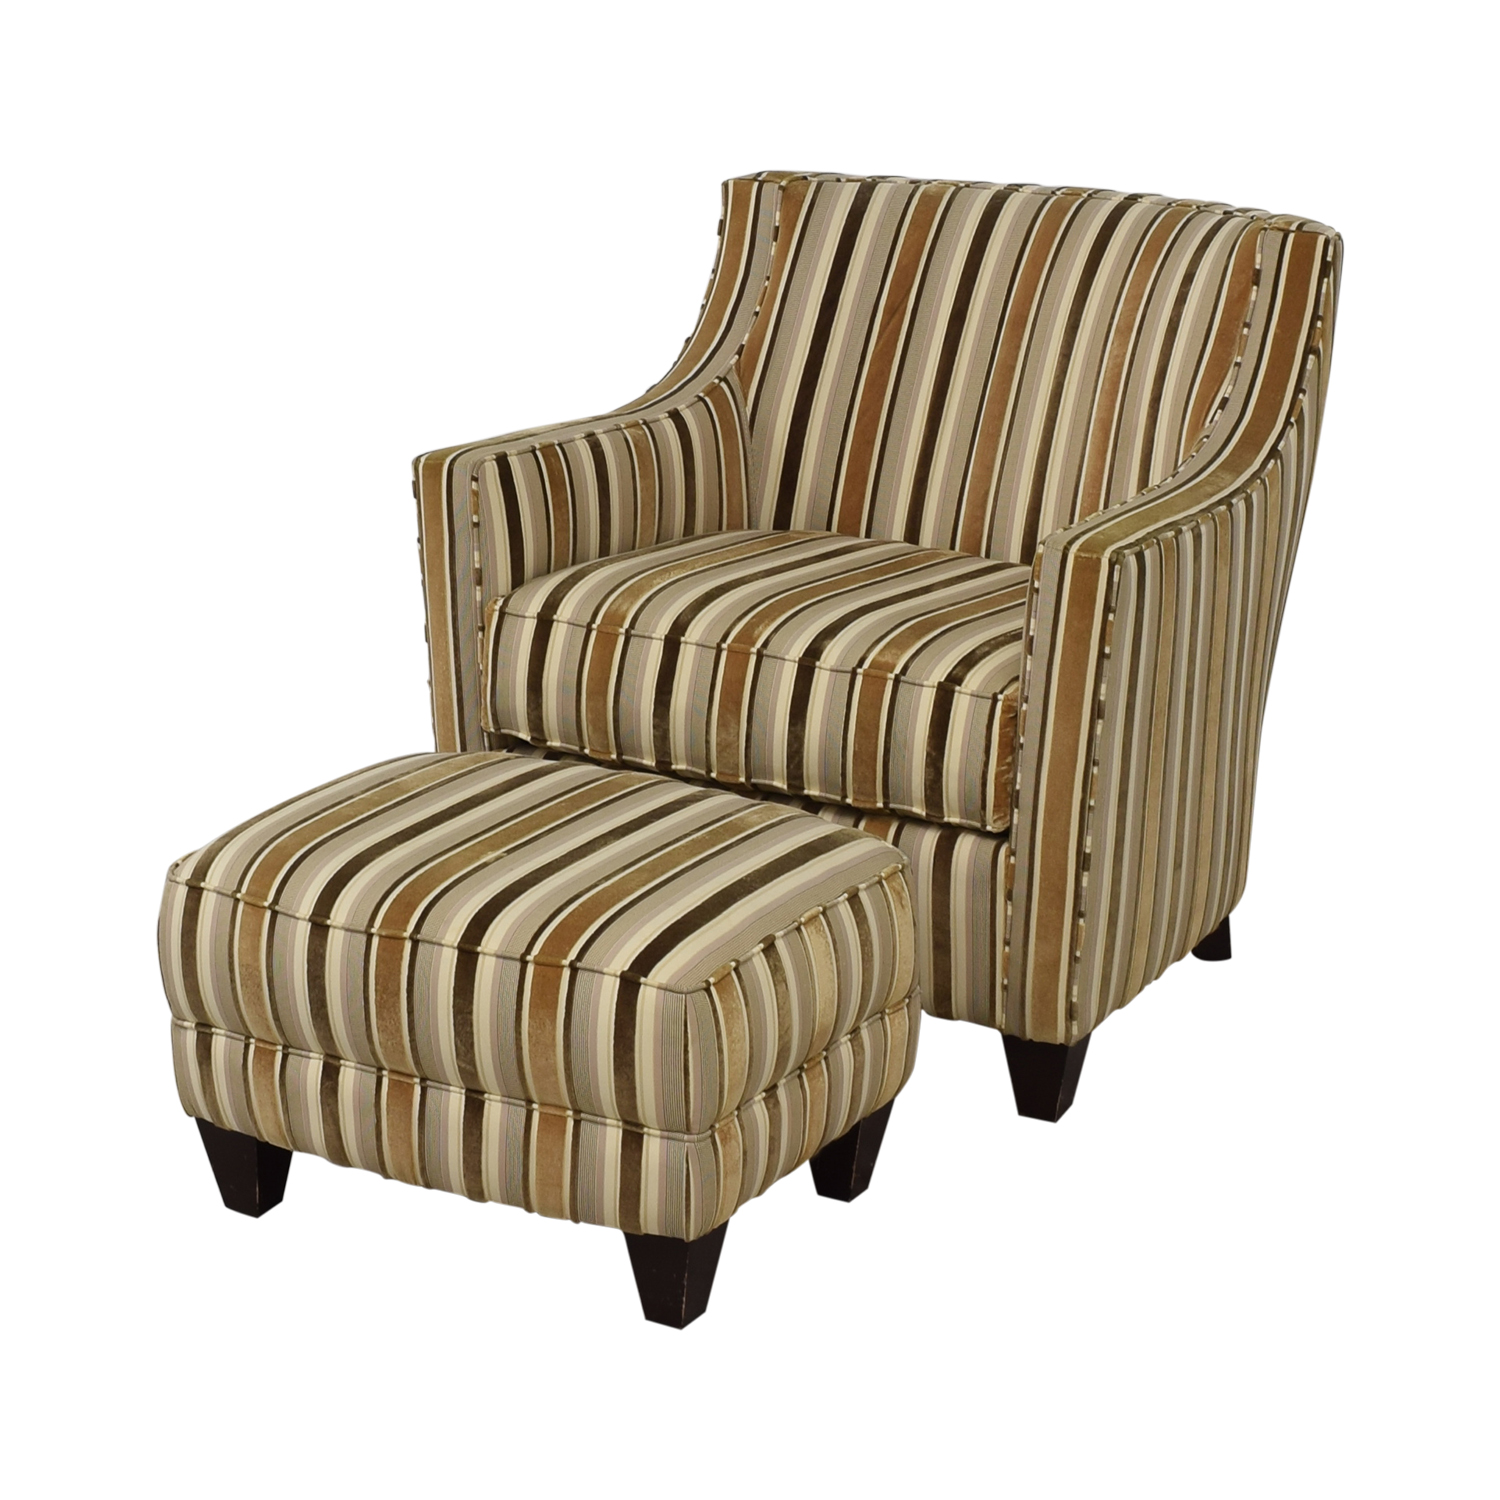 Robert Allen Robert Allen Beige and Brown Striped Accent Chair and Ottoman Chairs